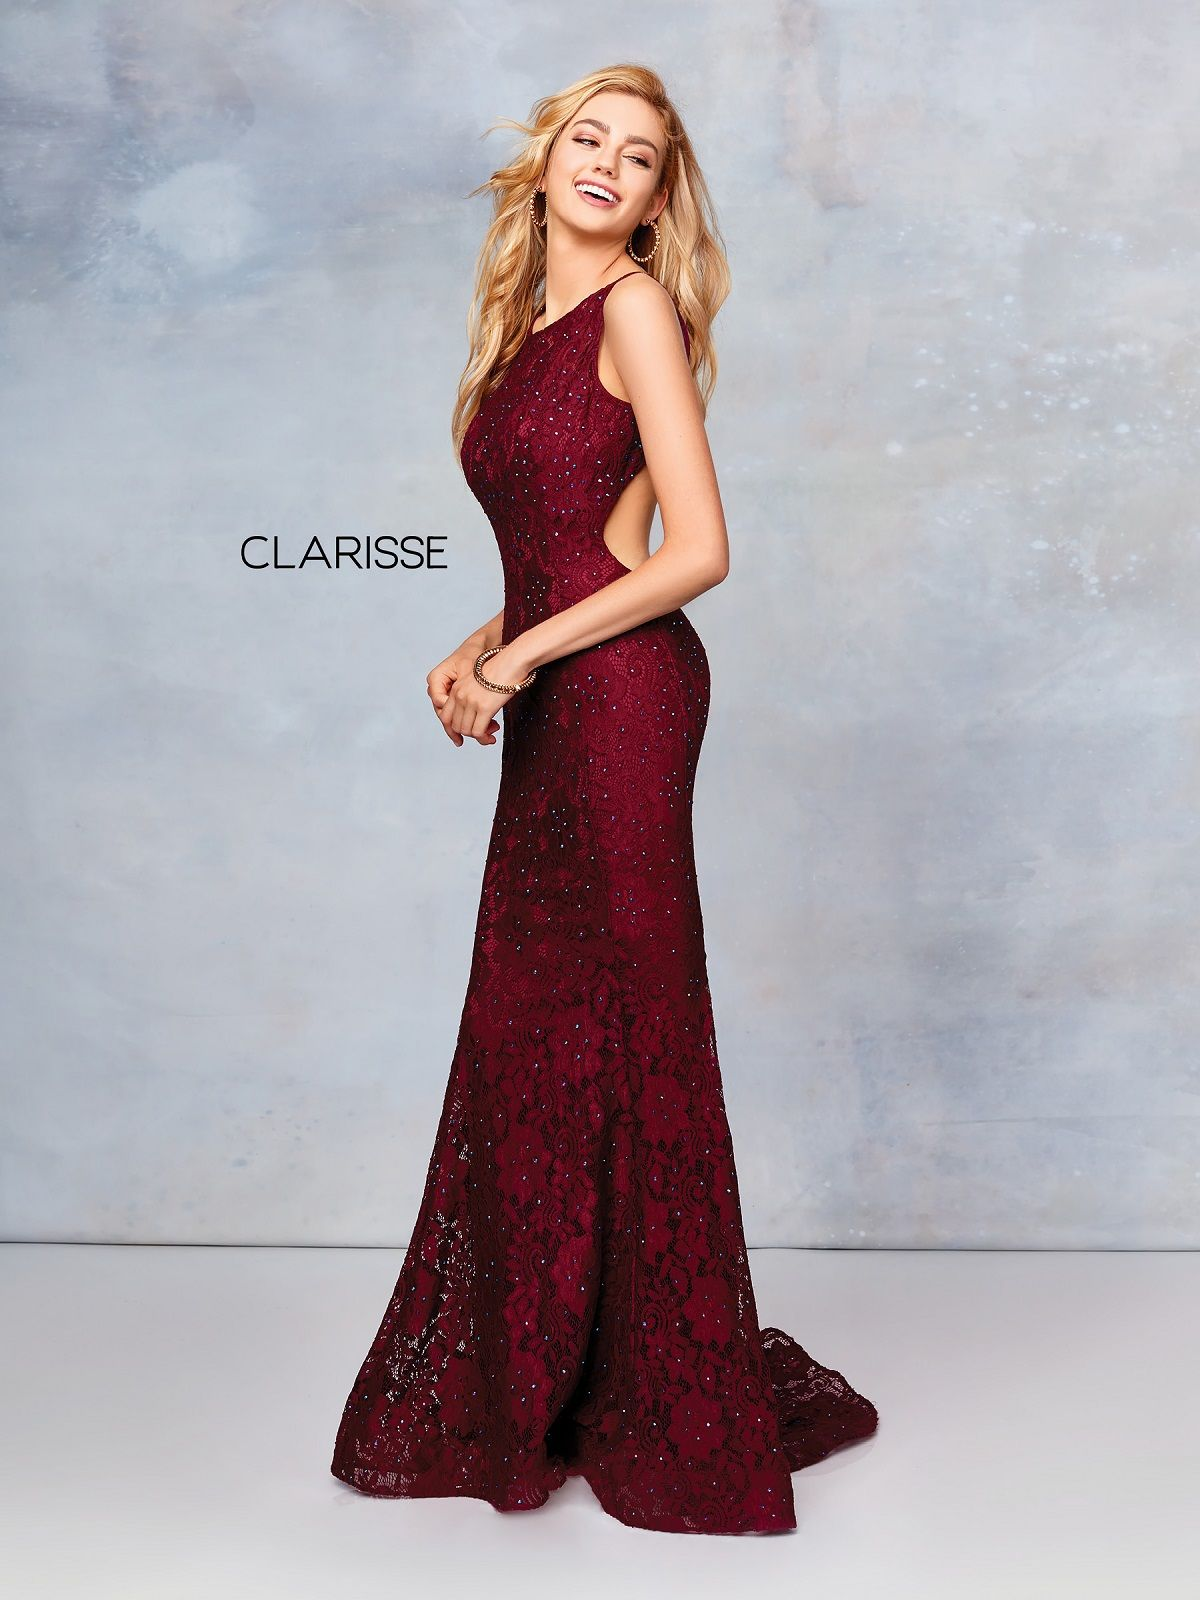 Clarisse Dress 3748 Stretch Lace Open Back Gown 6 Colors